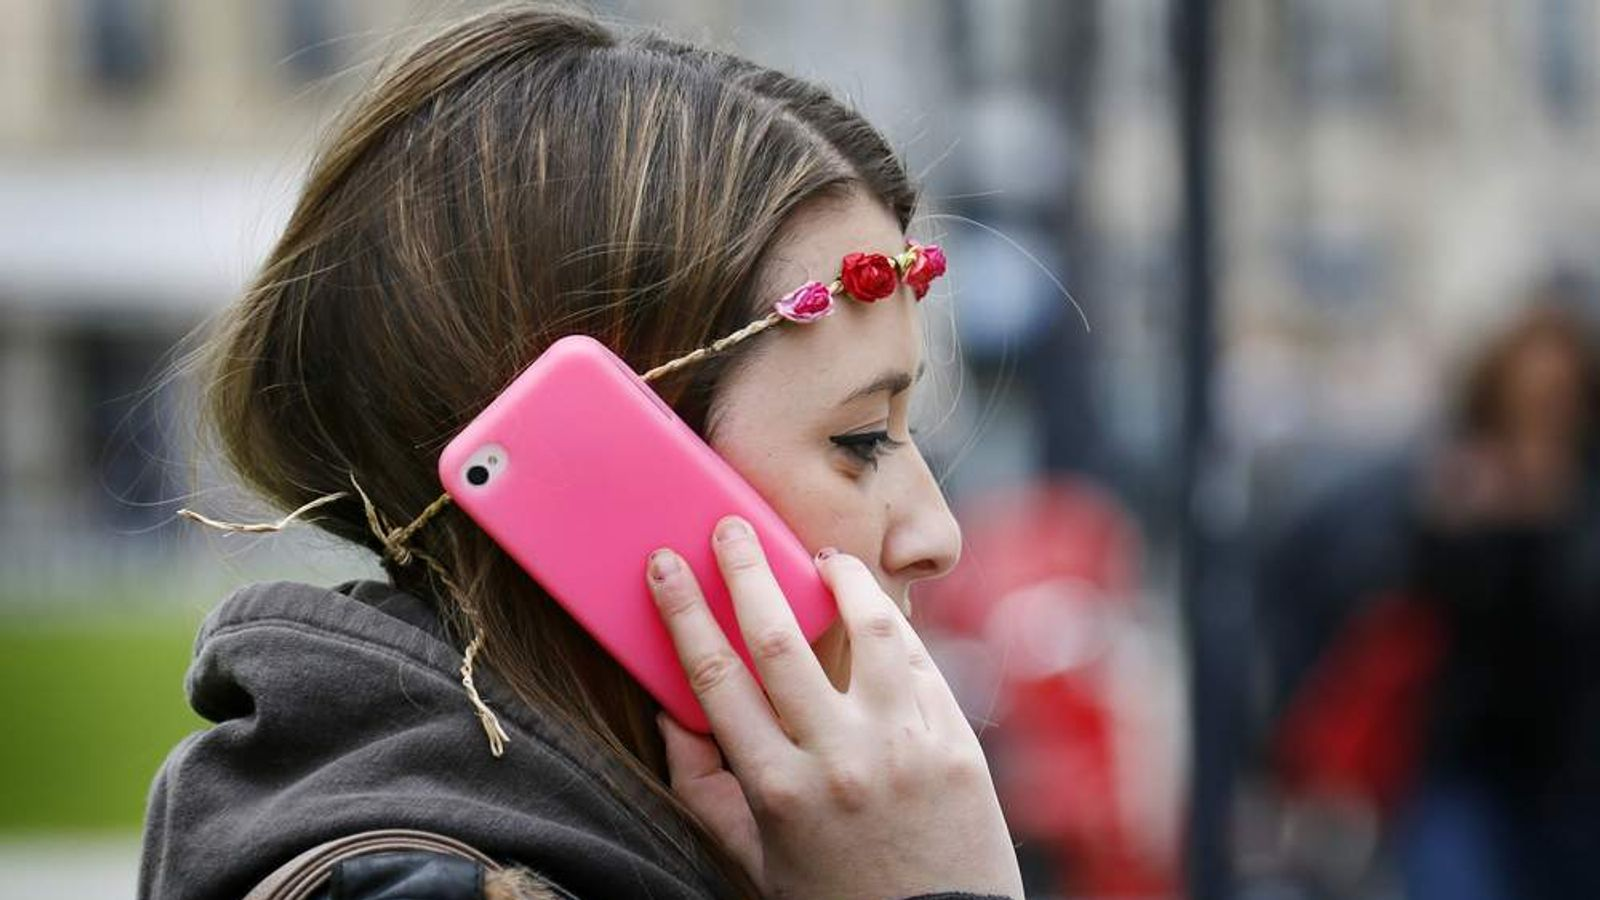 A young woman on a phone in Bordeaux